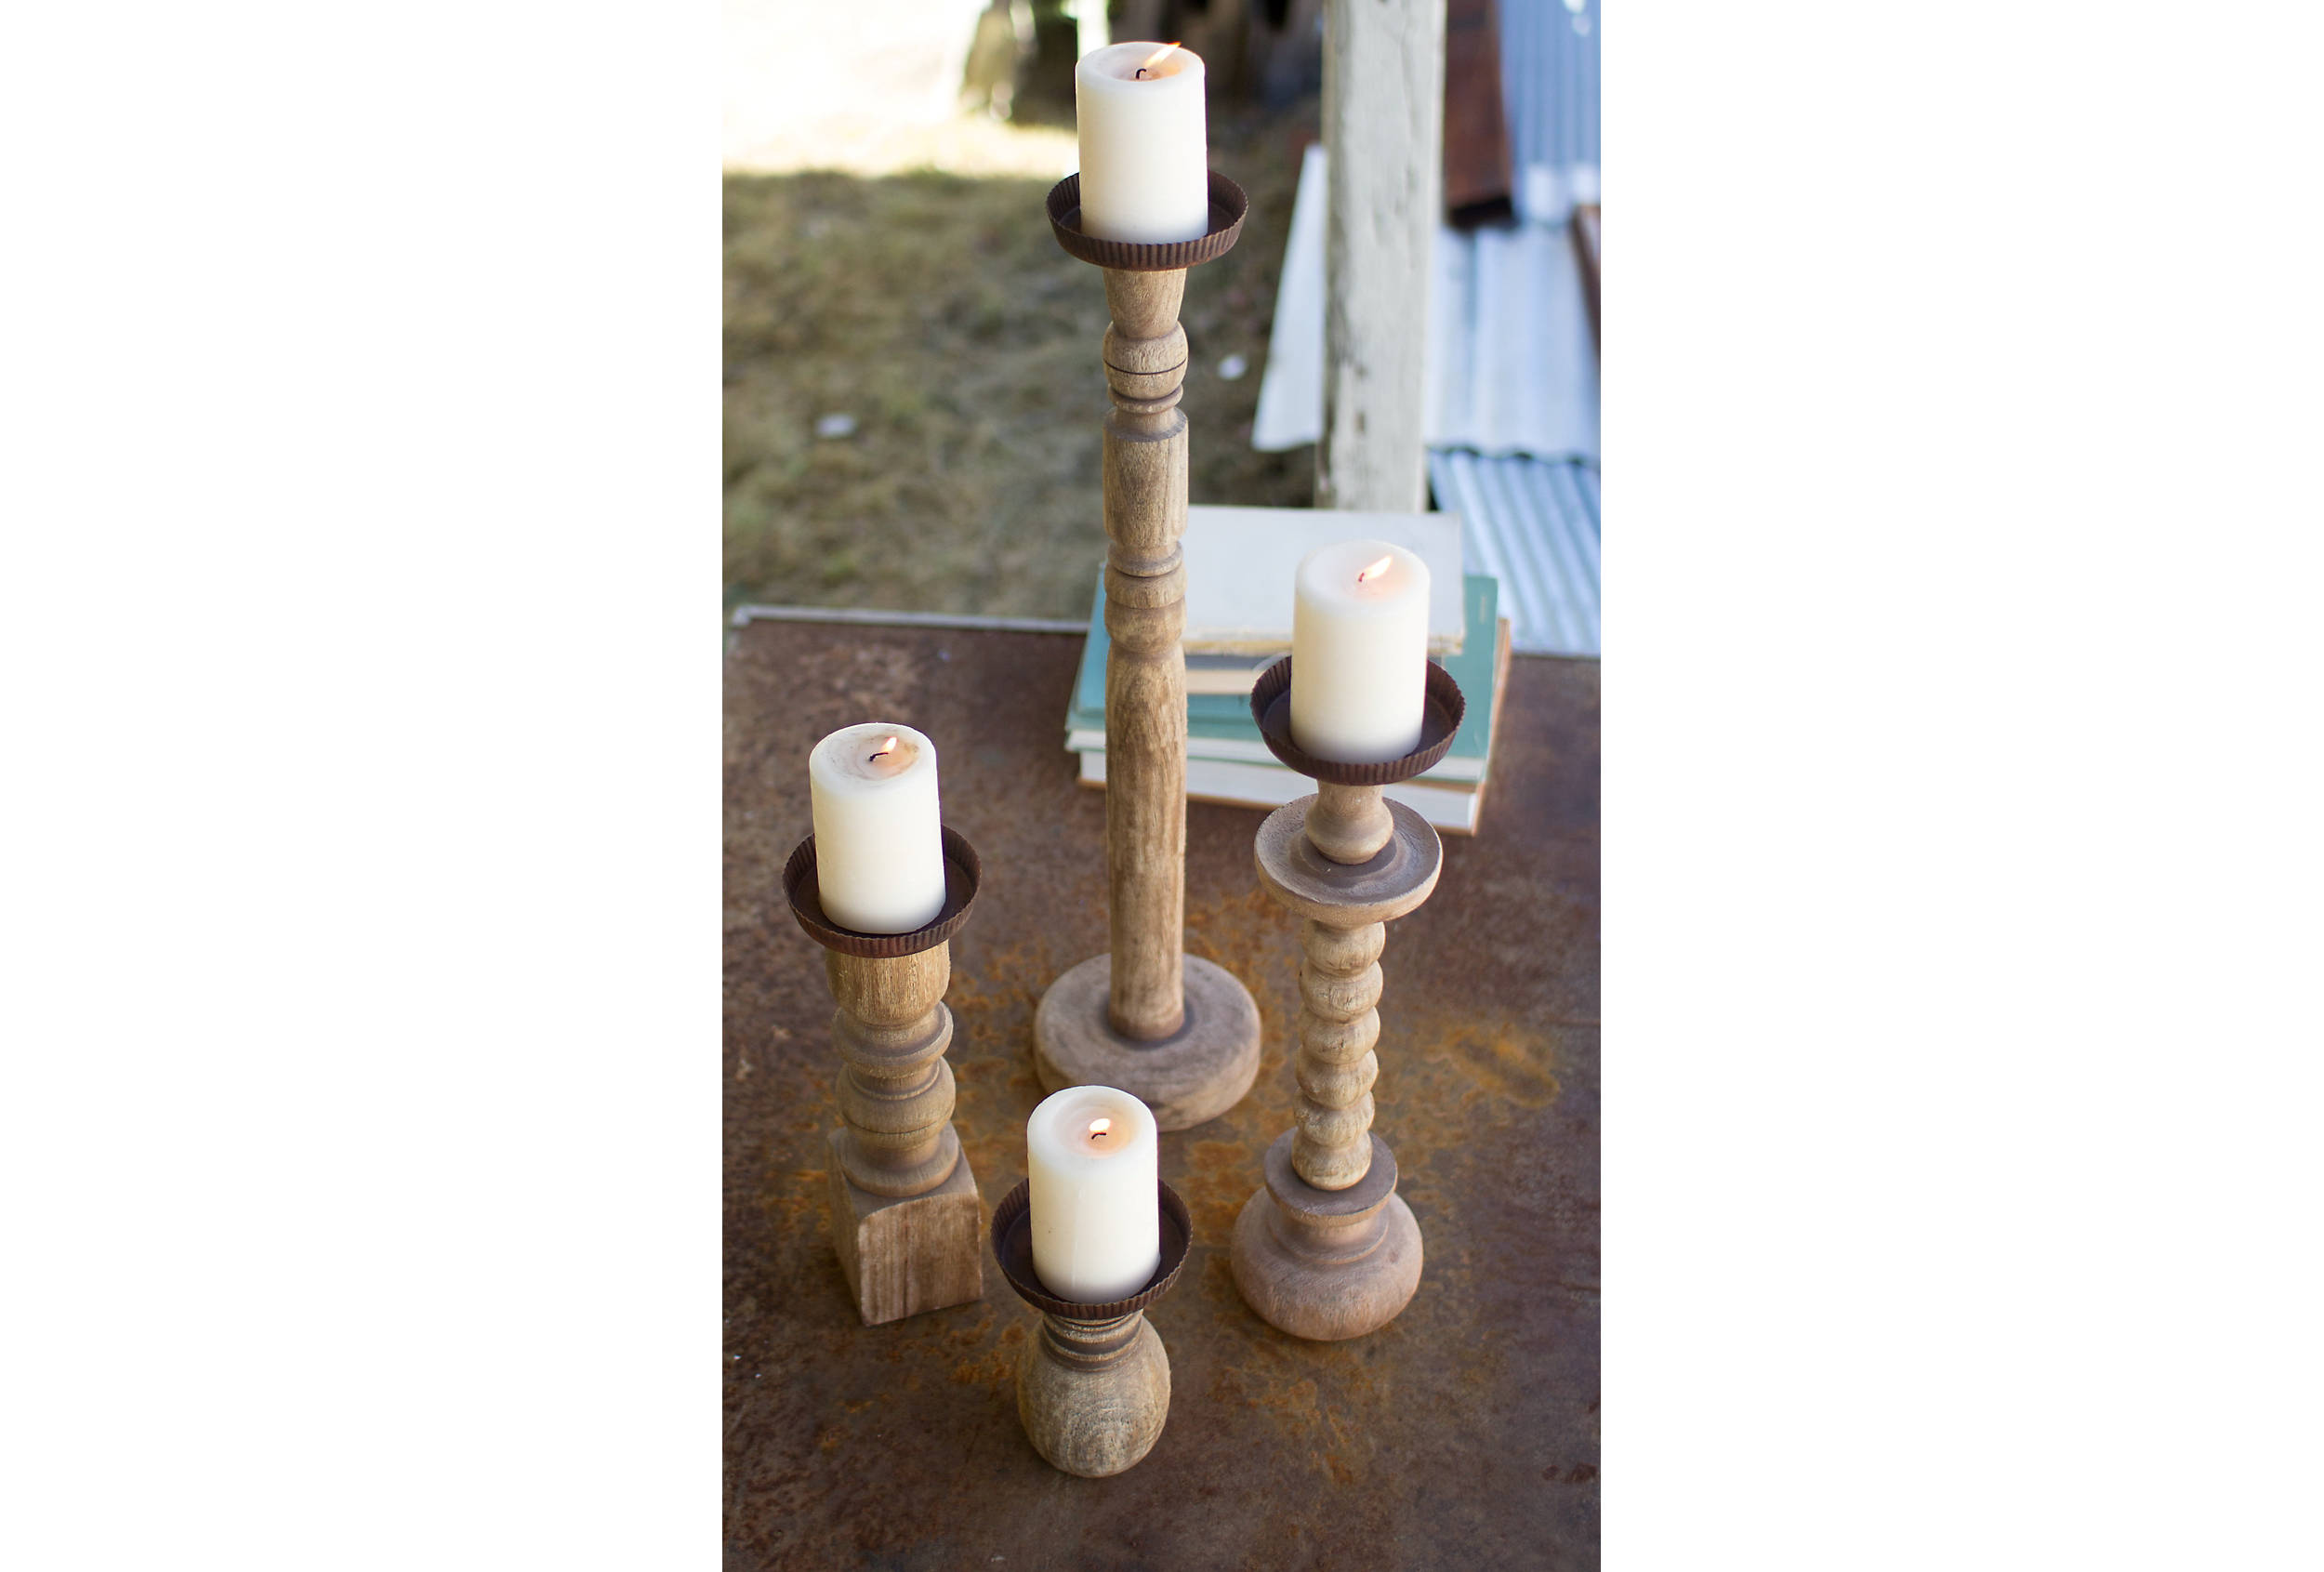 Shop Recycled Wood Turned Candle Holders, Set of 4 from Kirkland's on Openhaus